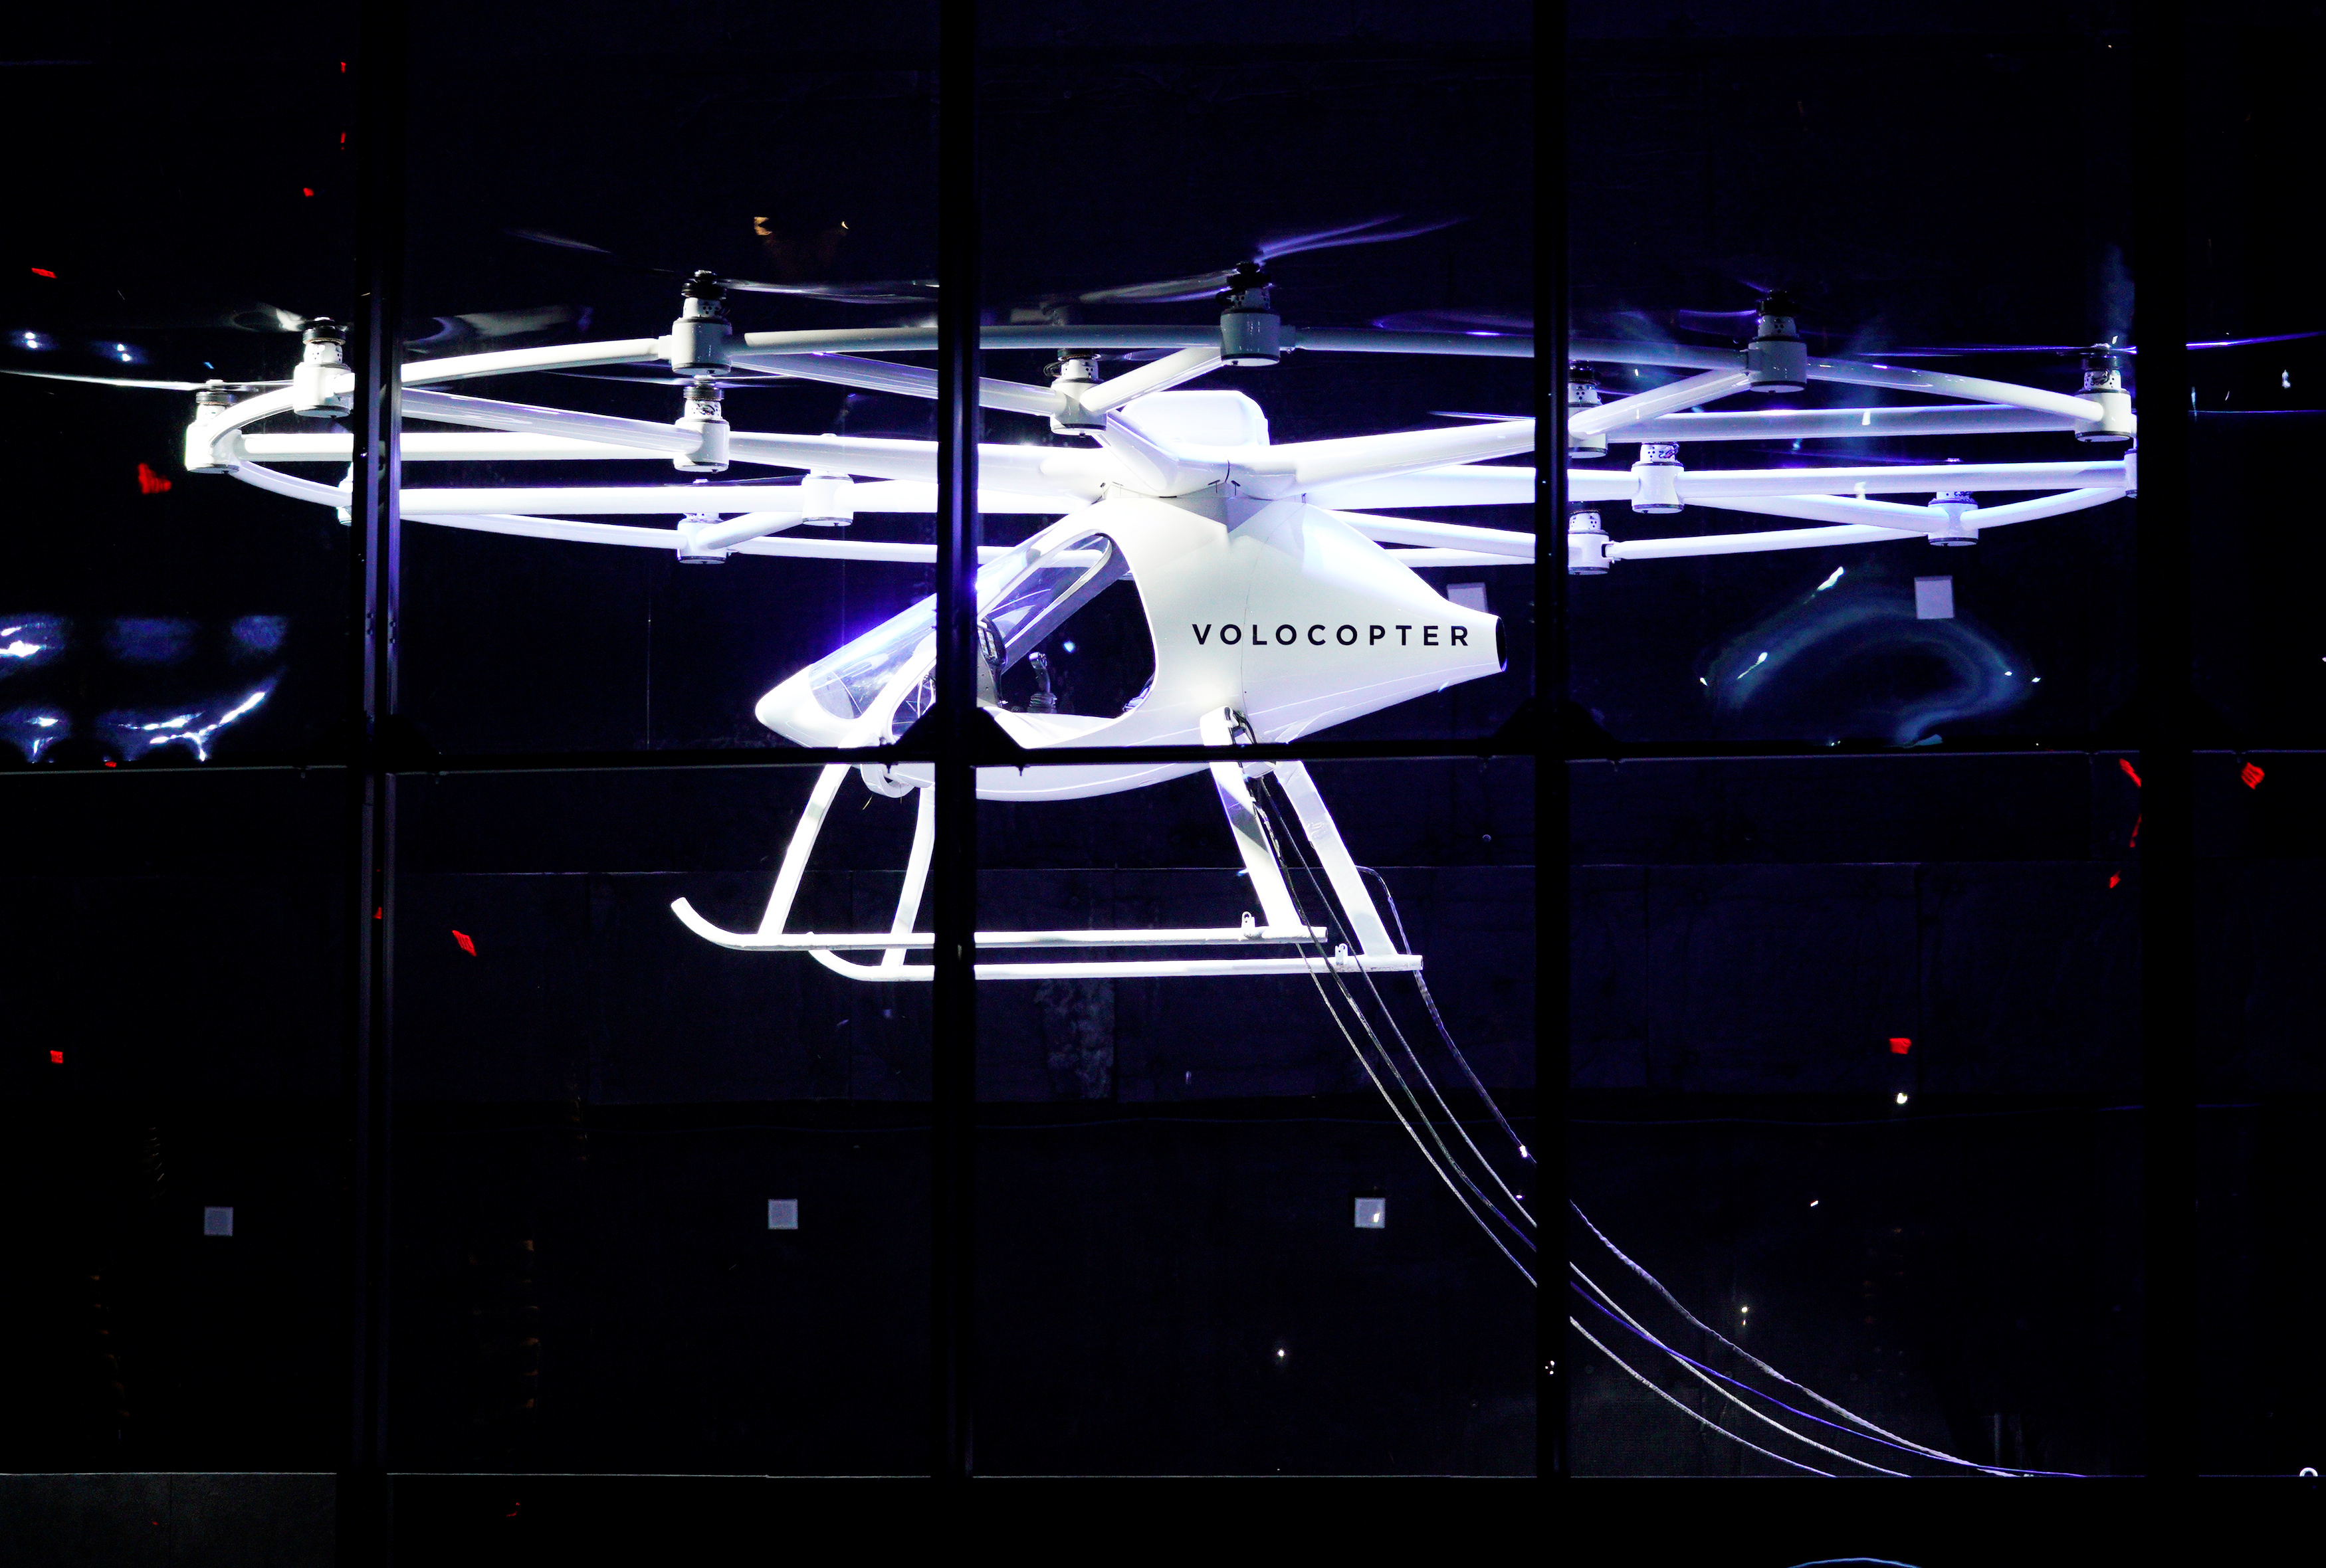 A two-seater Volocopter drone flies on stage at the Intel Keynote address at CES in Las Vegas